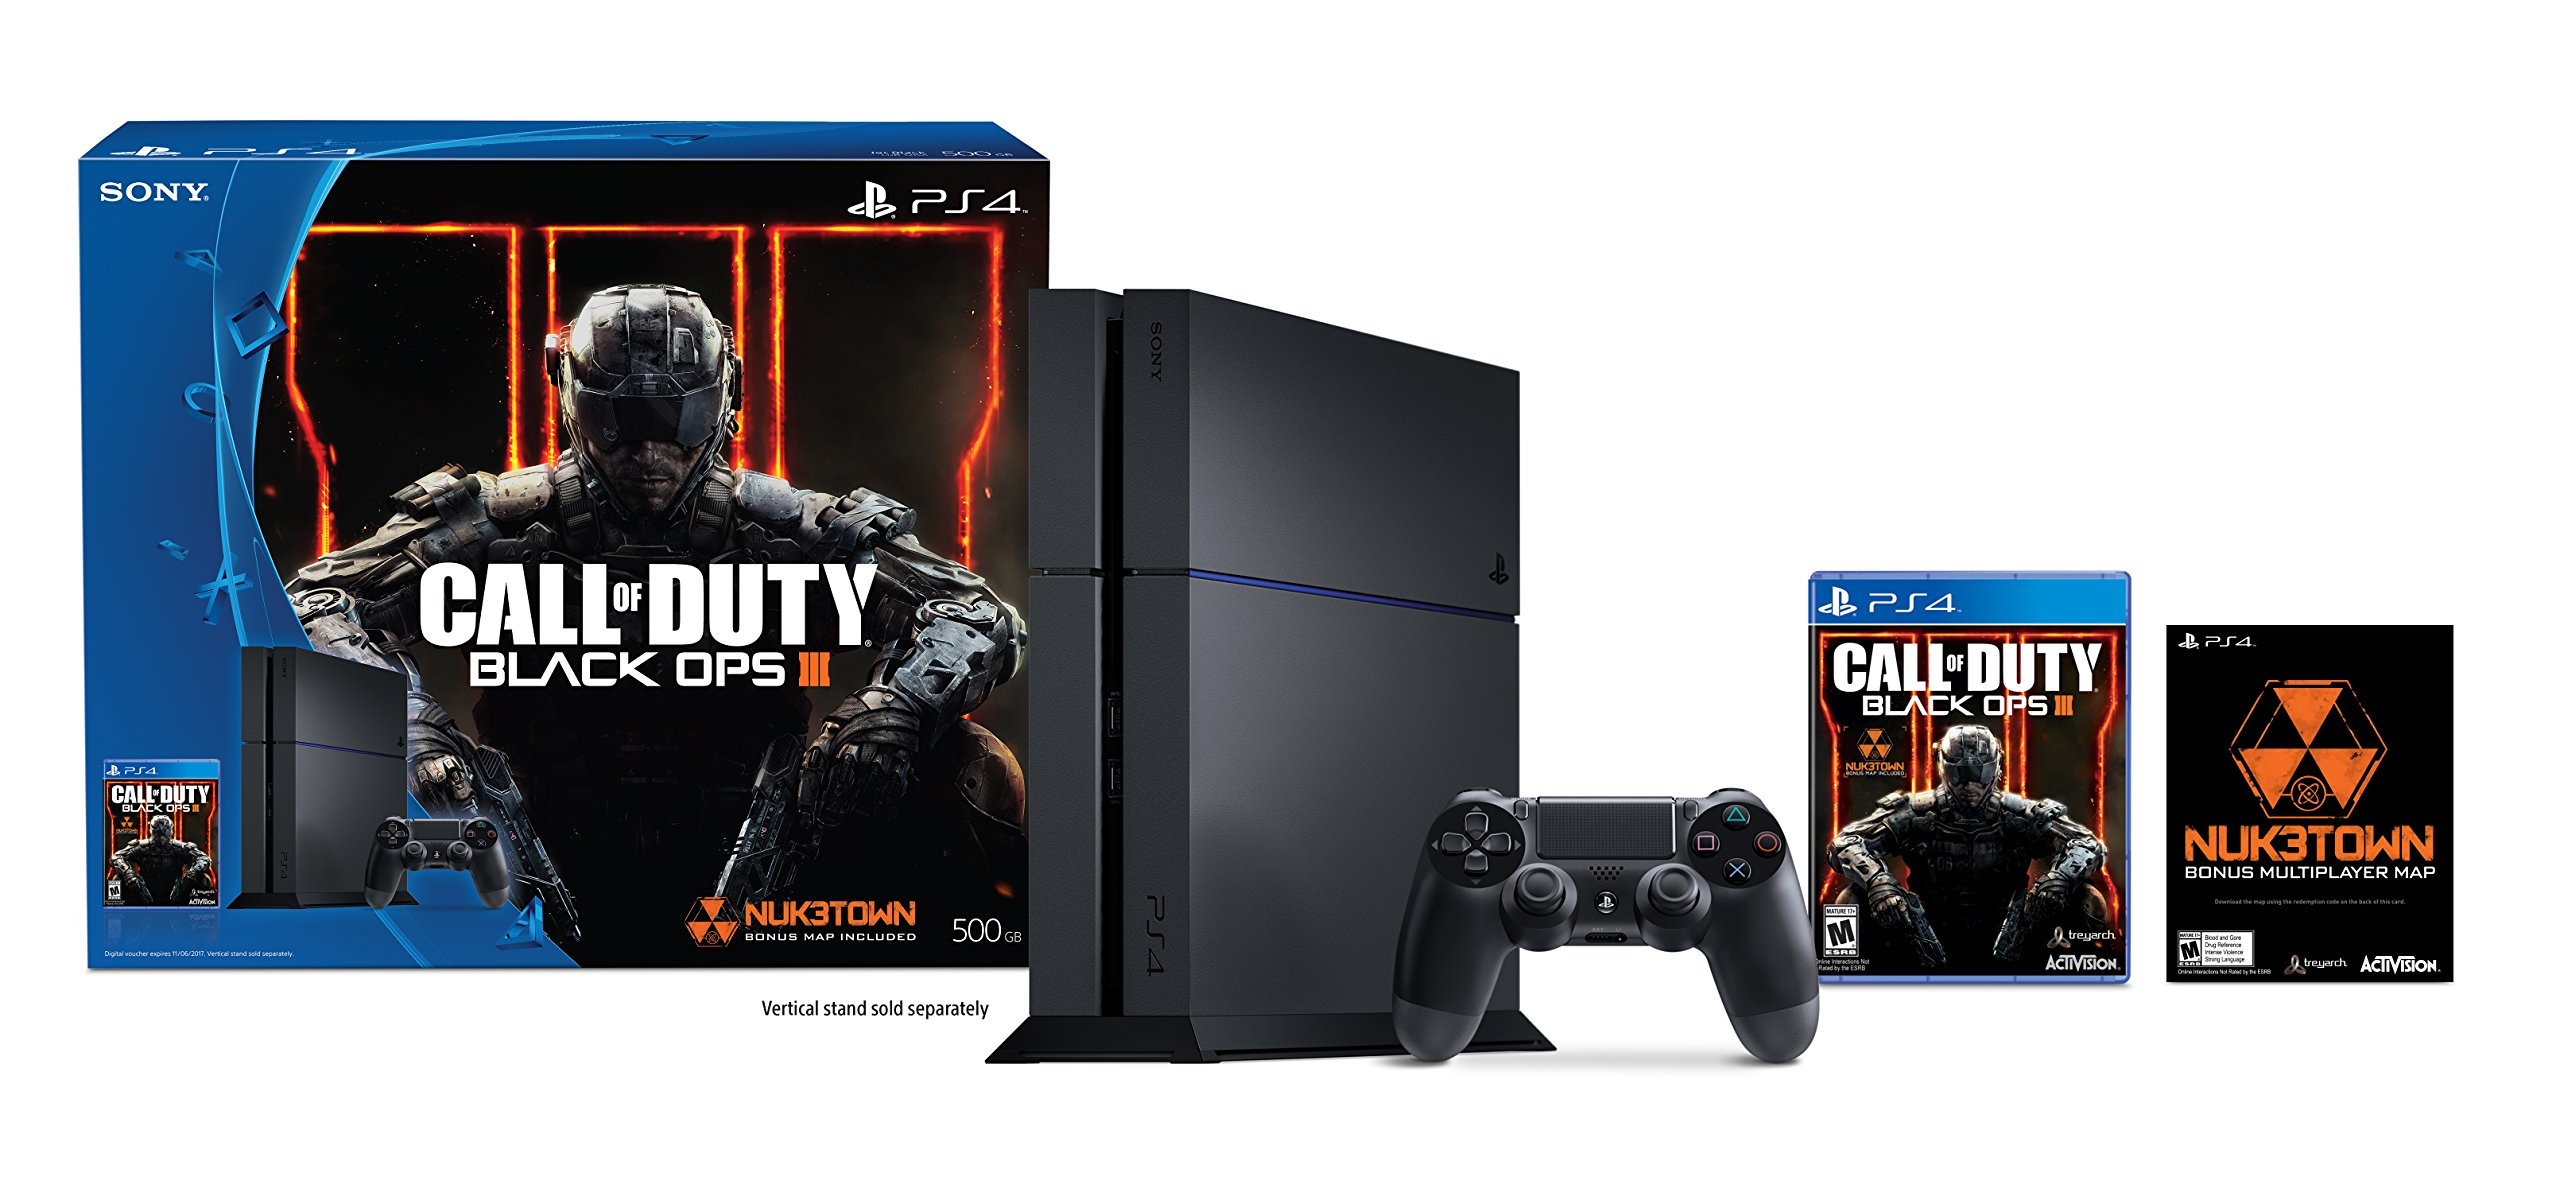 PlayStation 4 500GB Console - Call of Duty Black Ops III Bundle [Discontinued] by Sony